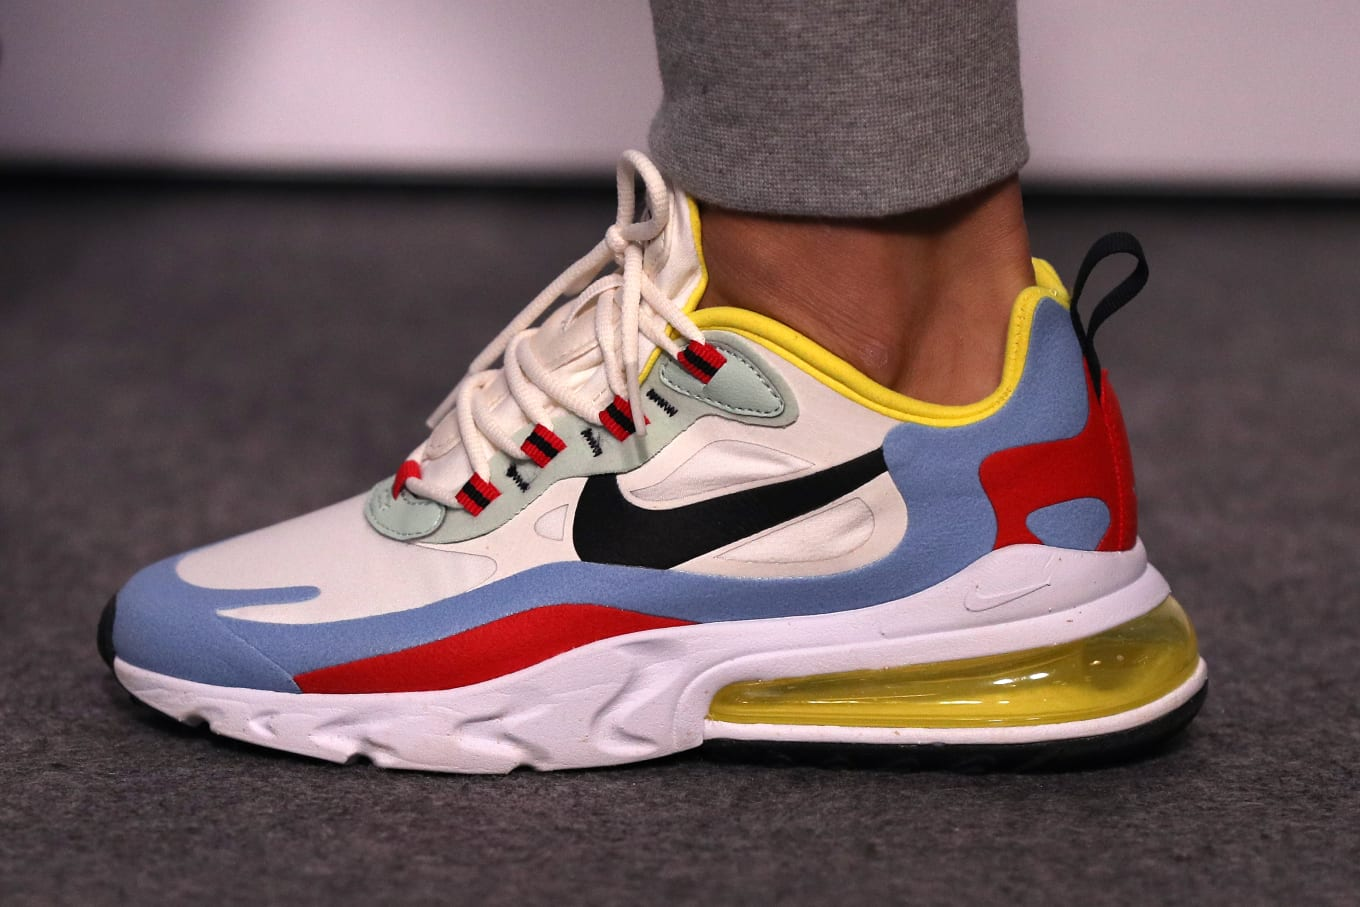 sale retailer aabe1 68161 Nike Air Max 270 React Release Date | Sole Collector